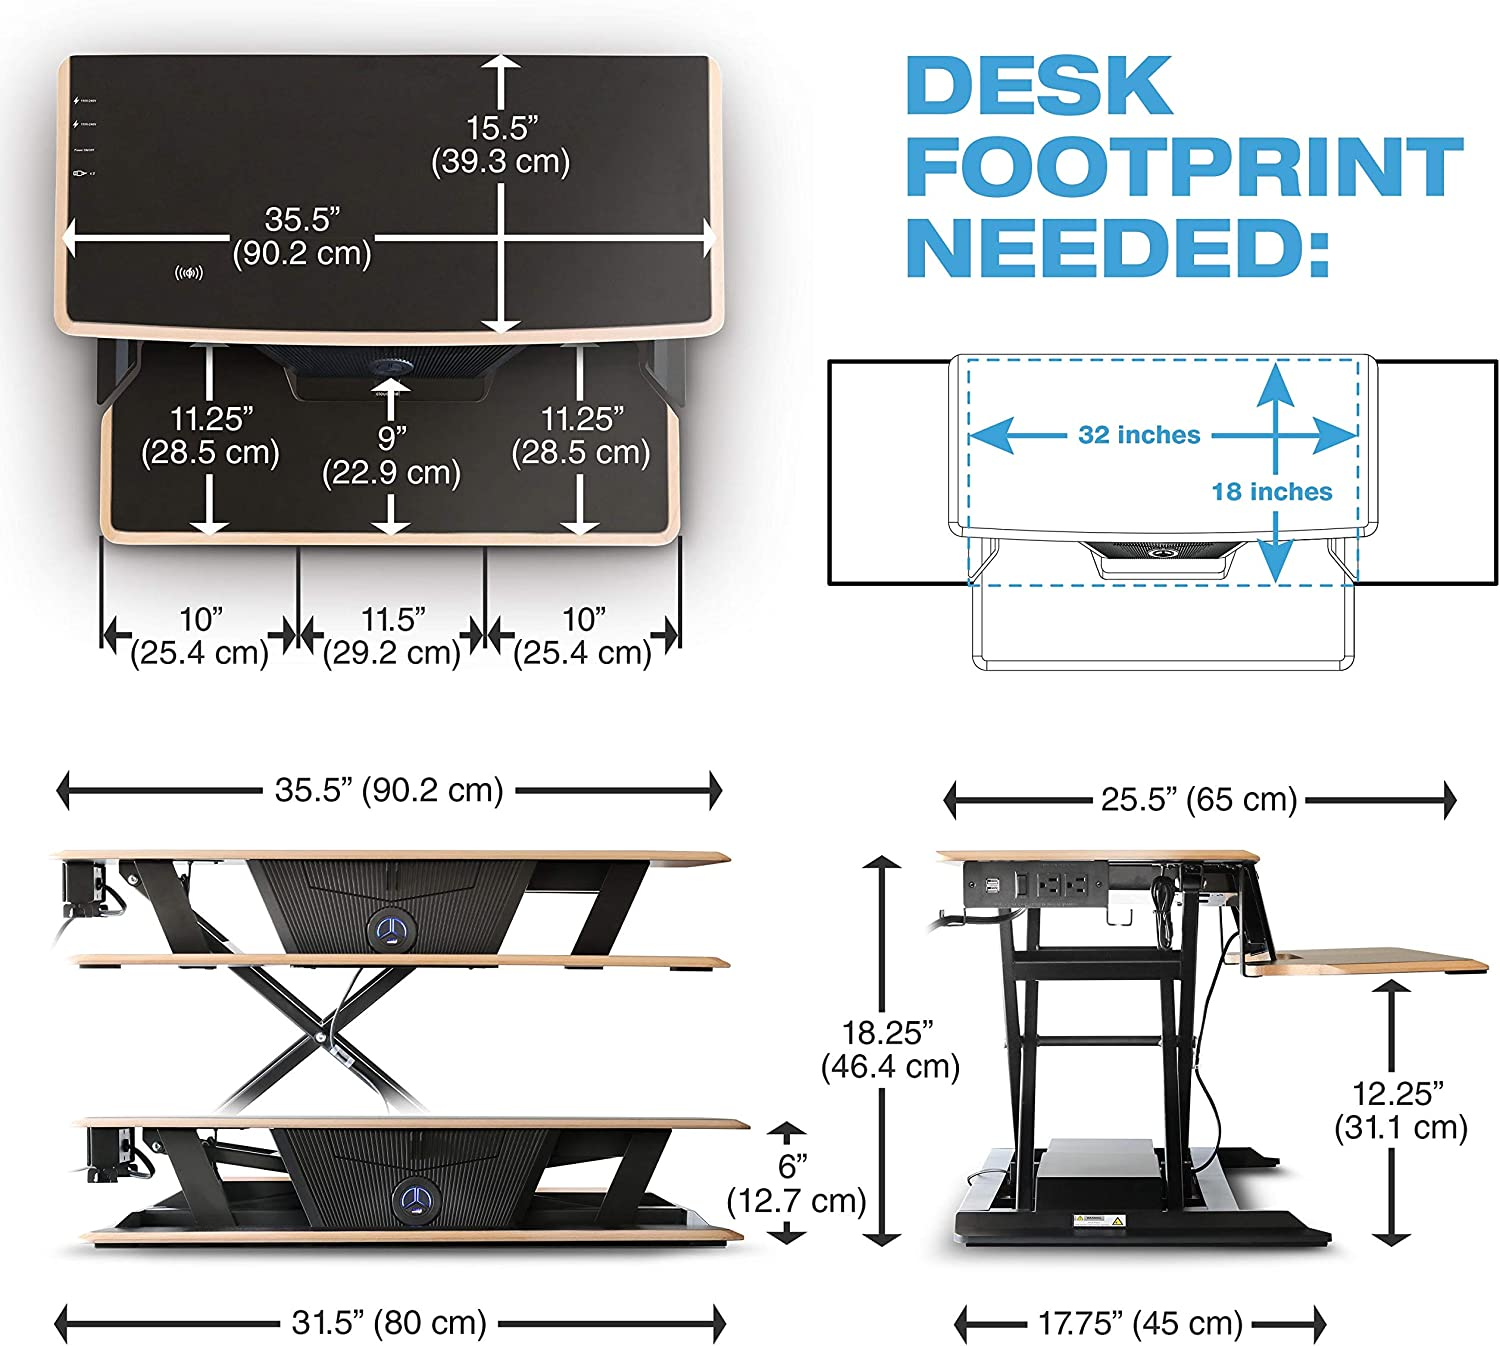 White Computer Desk Height Adjustable Sit Stand Up Converter 90 lbs Cloud Nine Electric Standing Desk Lifts Two Monitors - Motorized Riser